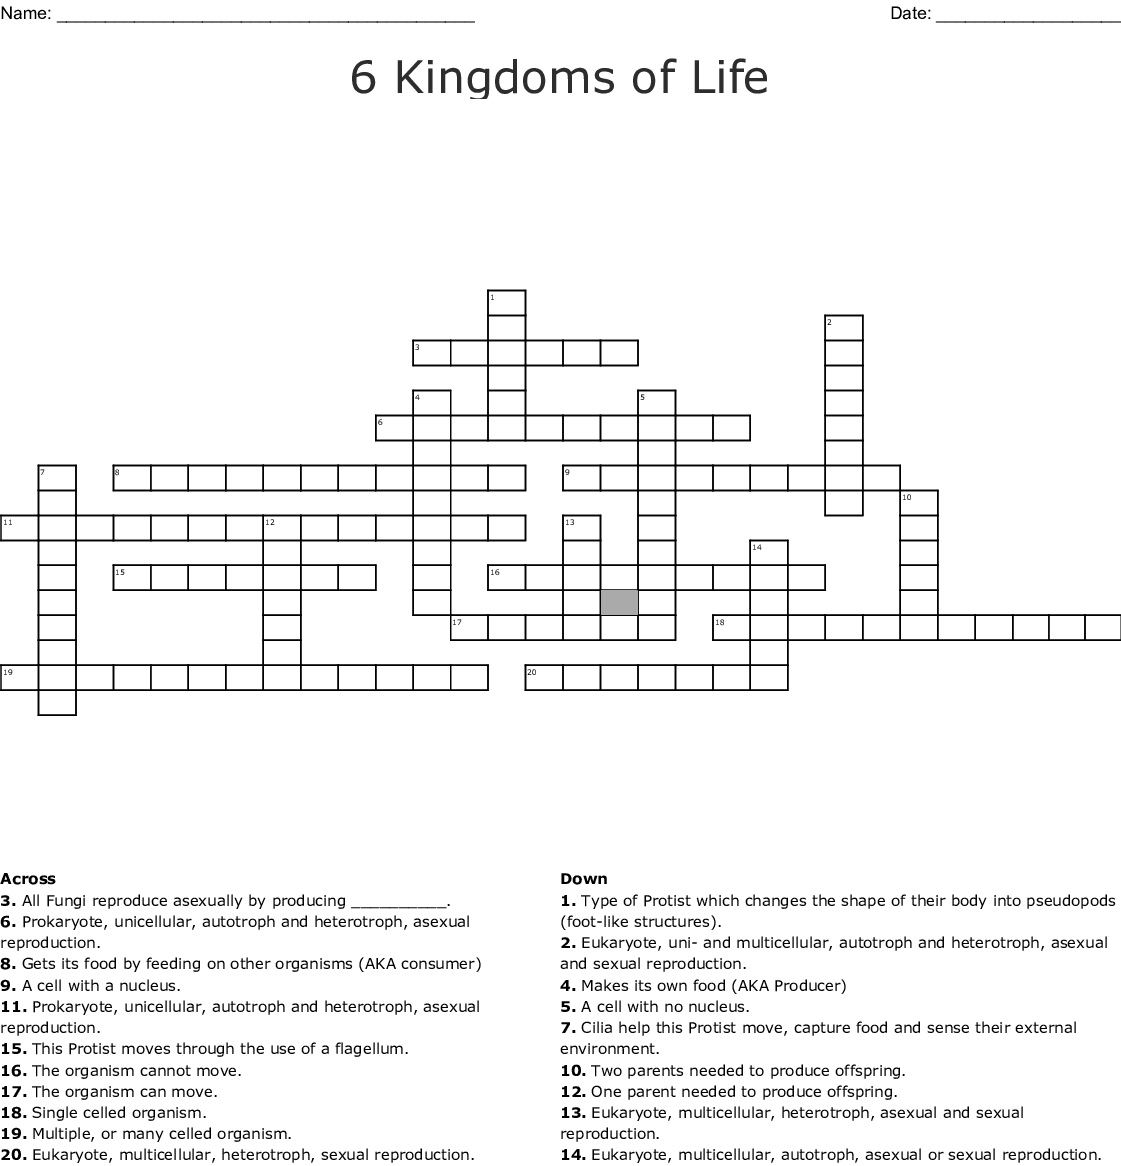 6 Kingdoms Of Life Crossword